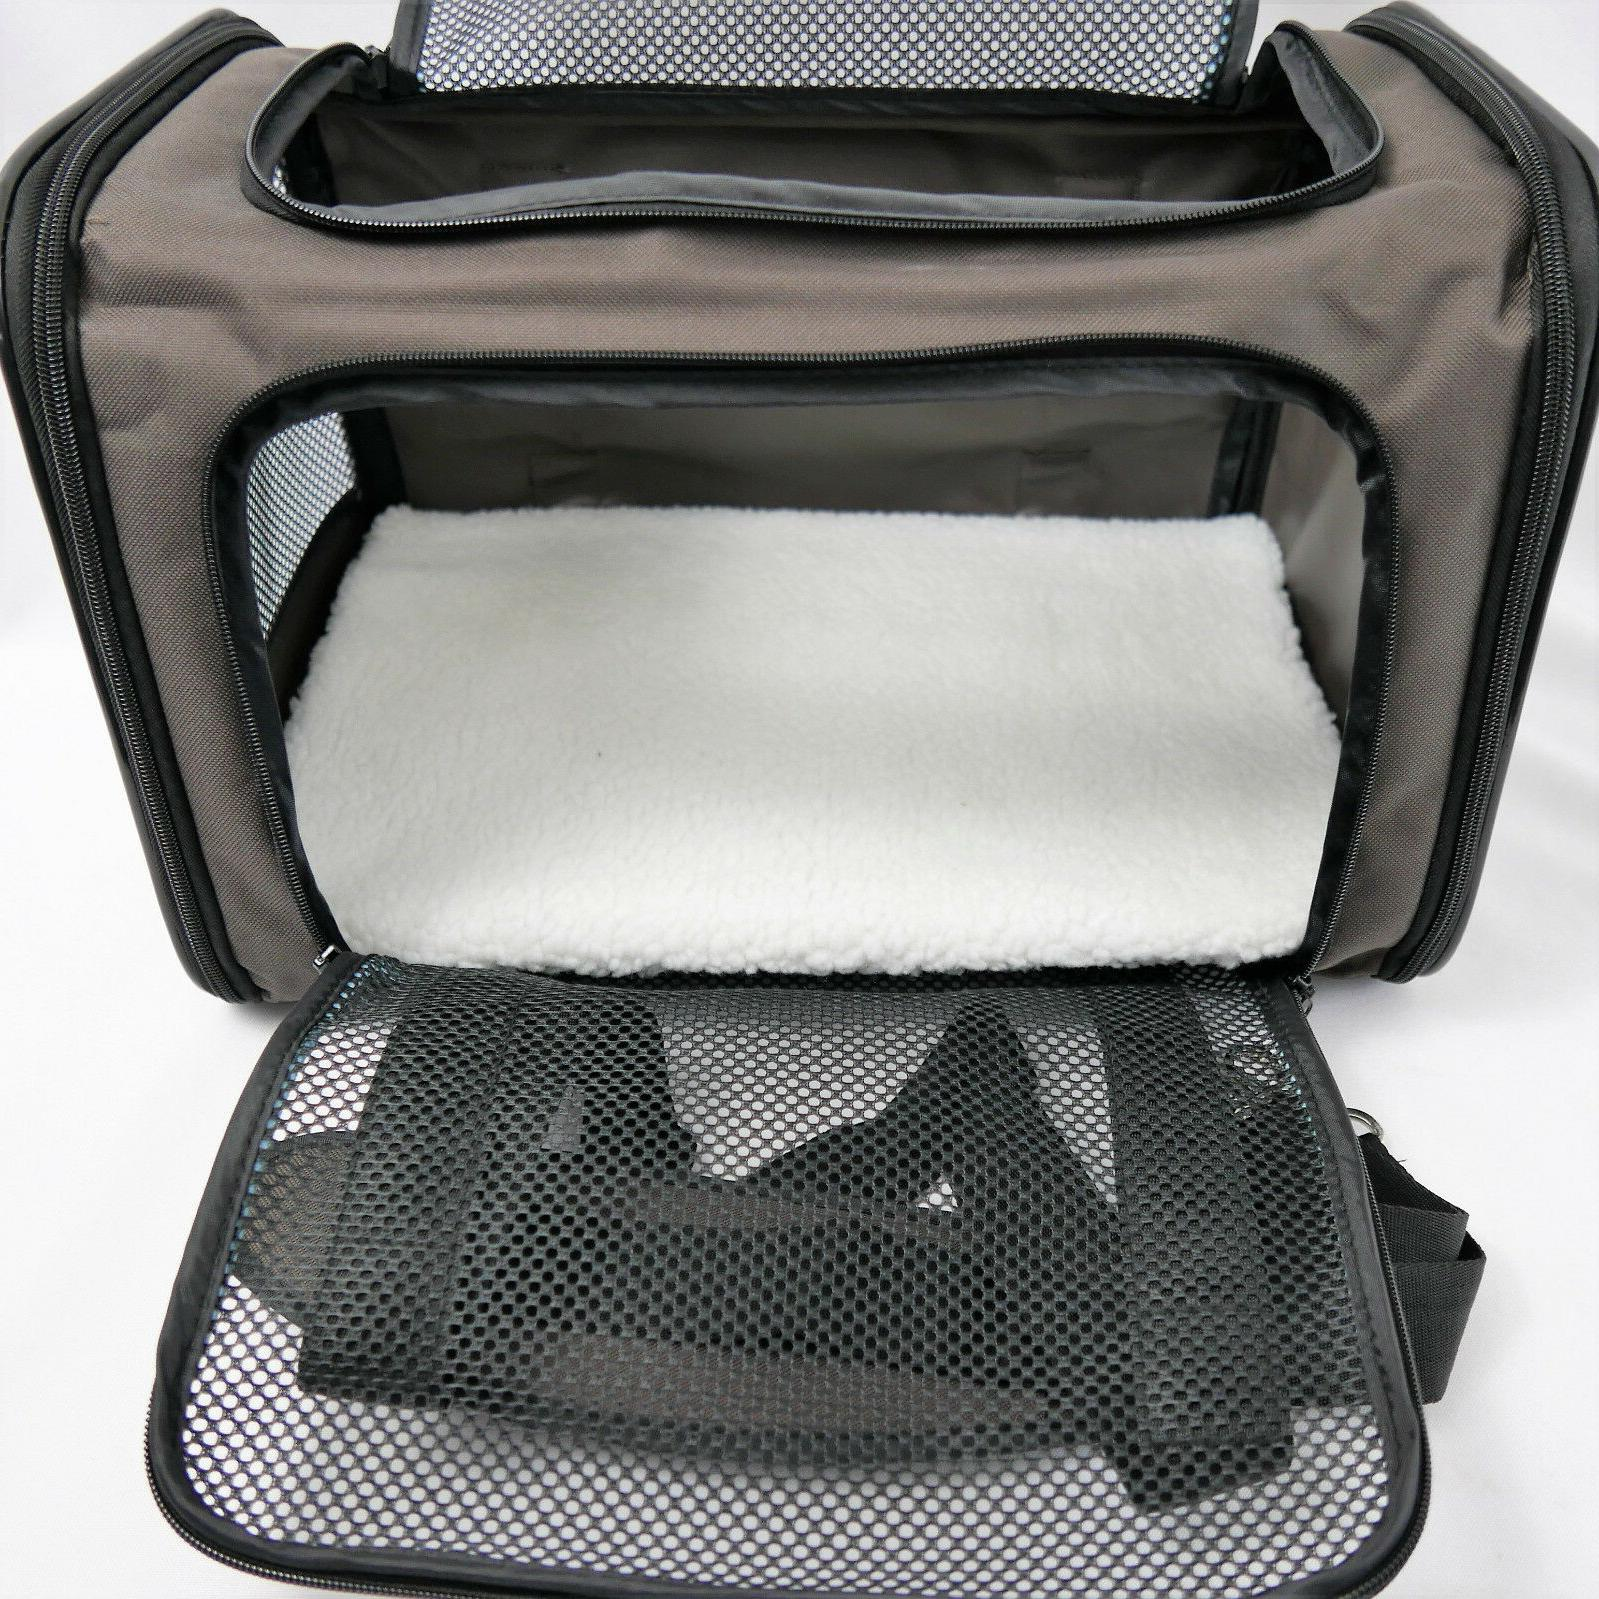 X-ZONE PET Pet Carrier, Sided Collapsible Medium